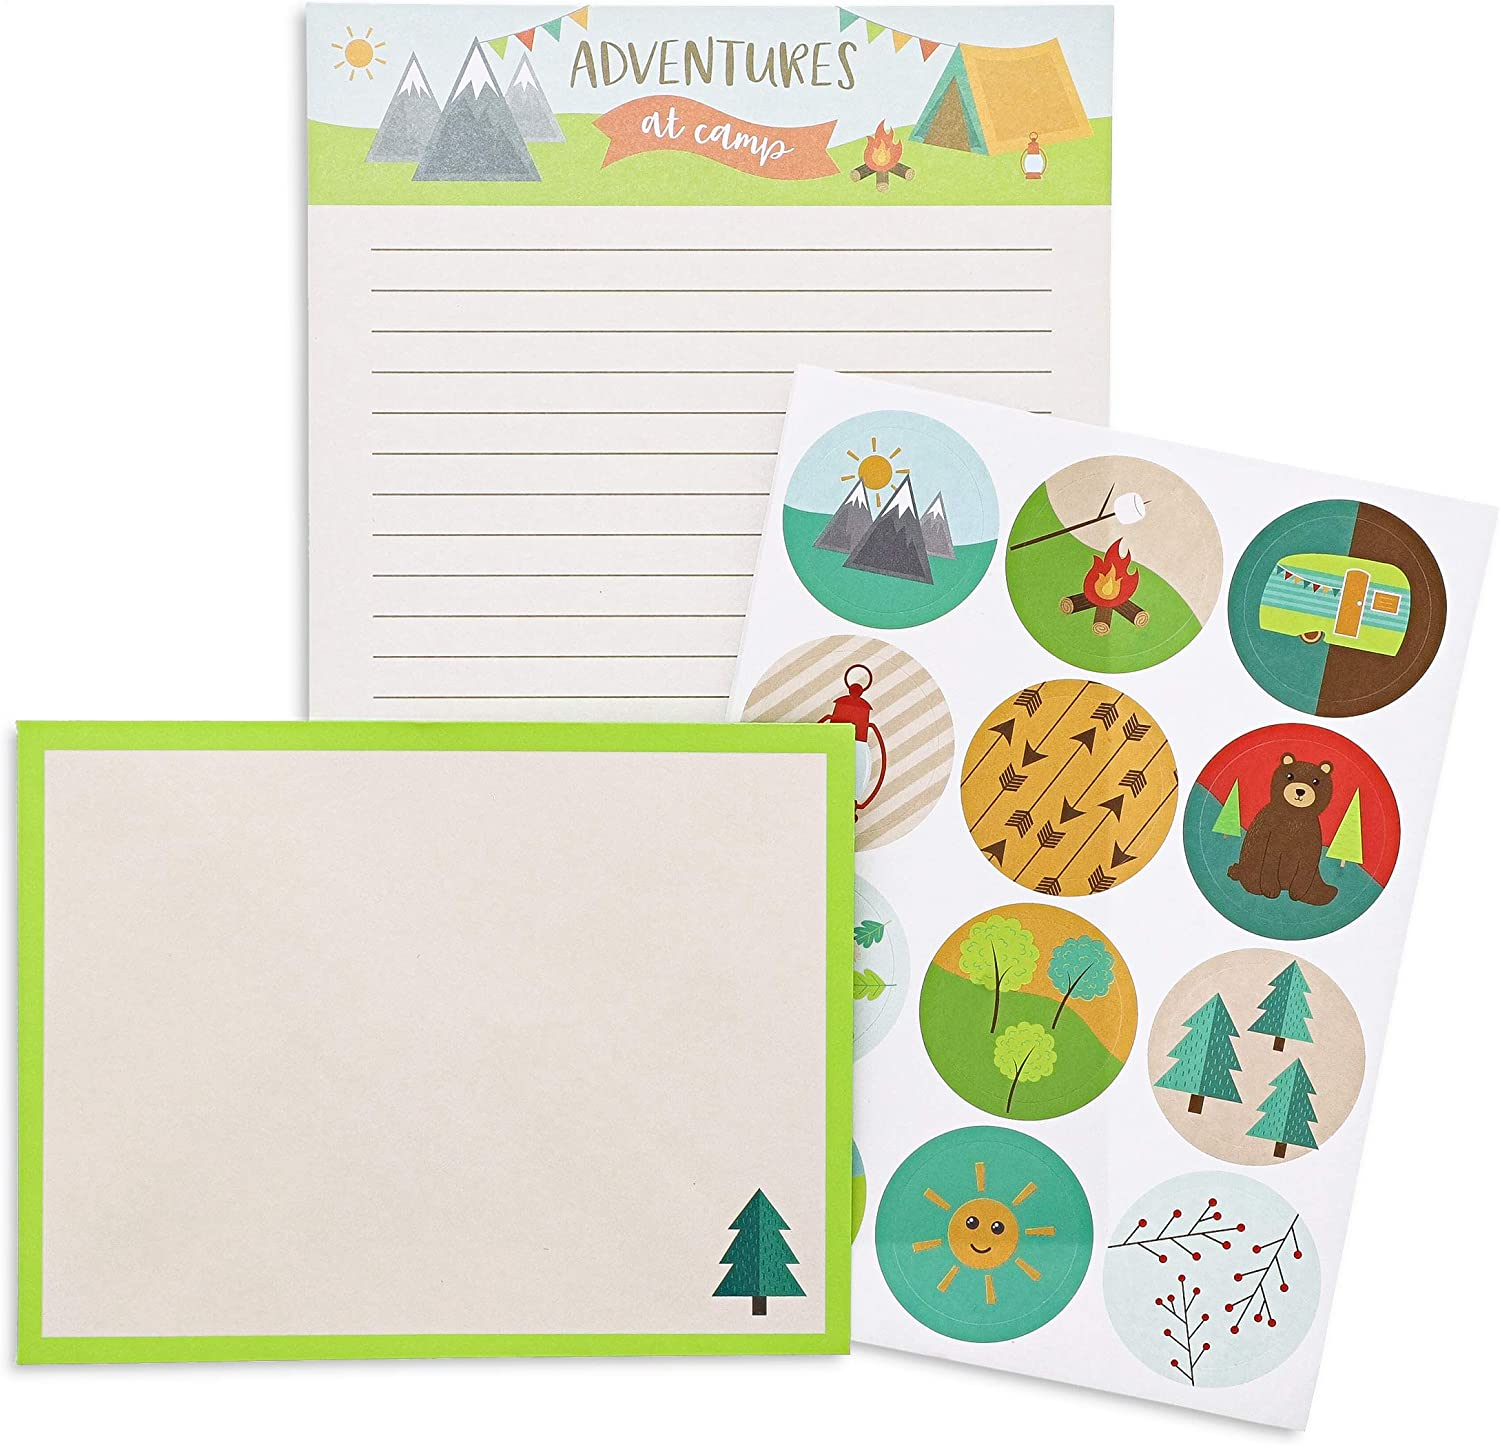 Camp notes Summer Camp Stationery, Kids notes to home 20ct Note cards /& Envelopes Kids Camp note cards Printed PERSONALIZED Stationery